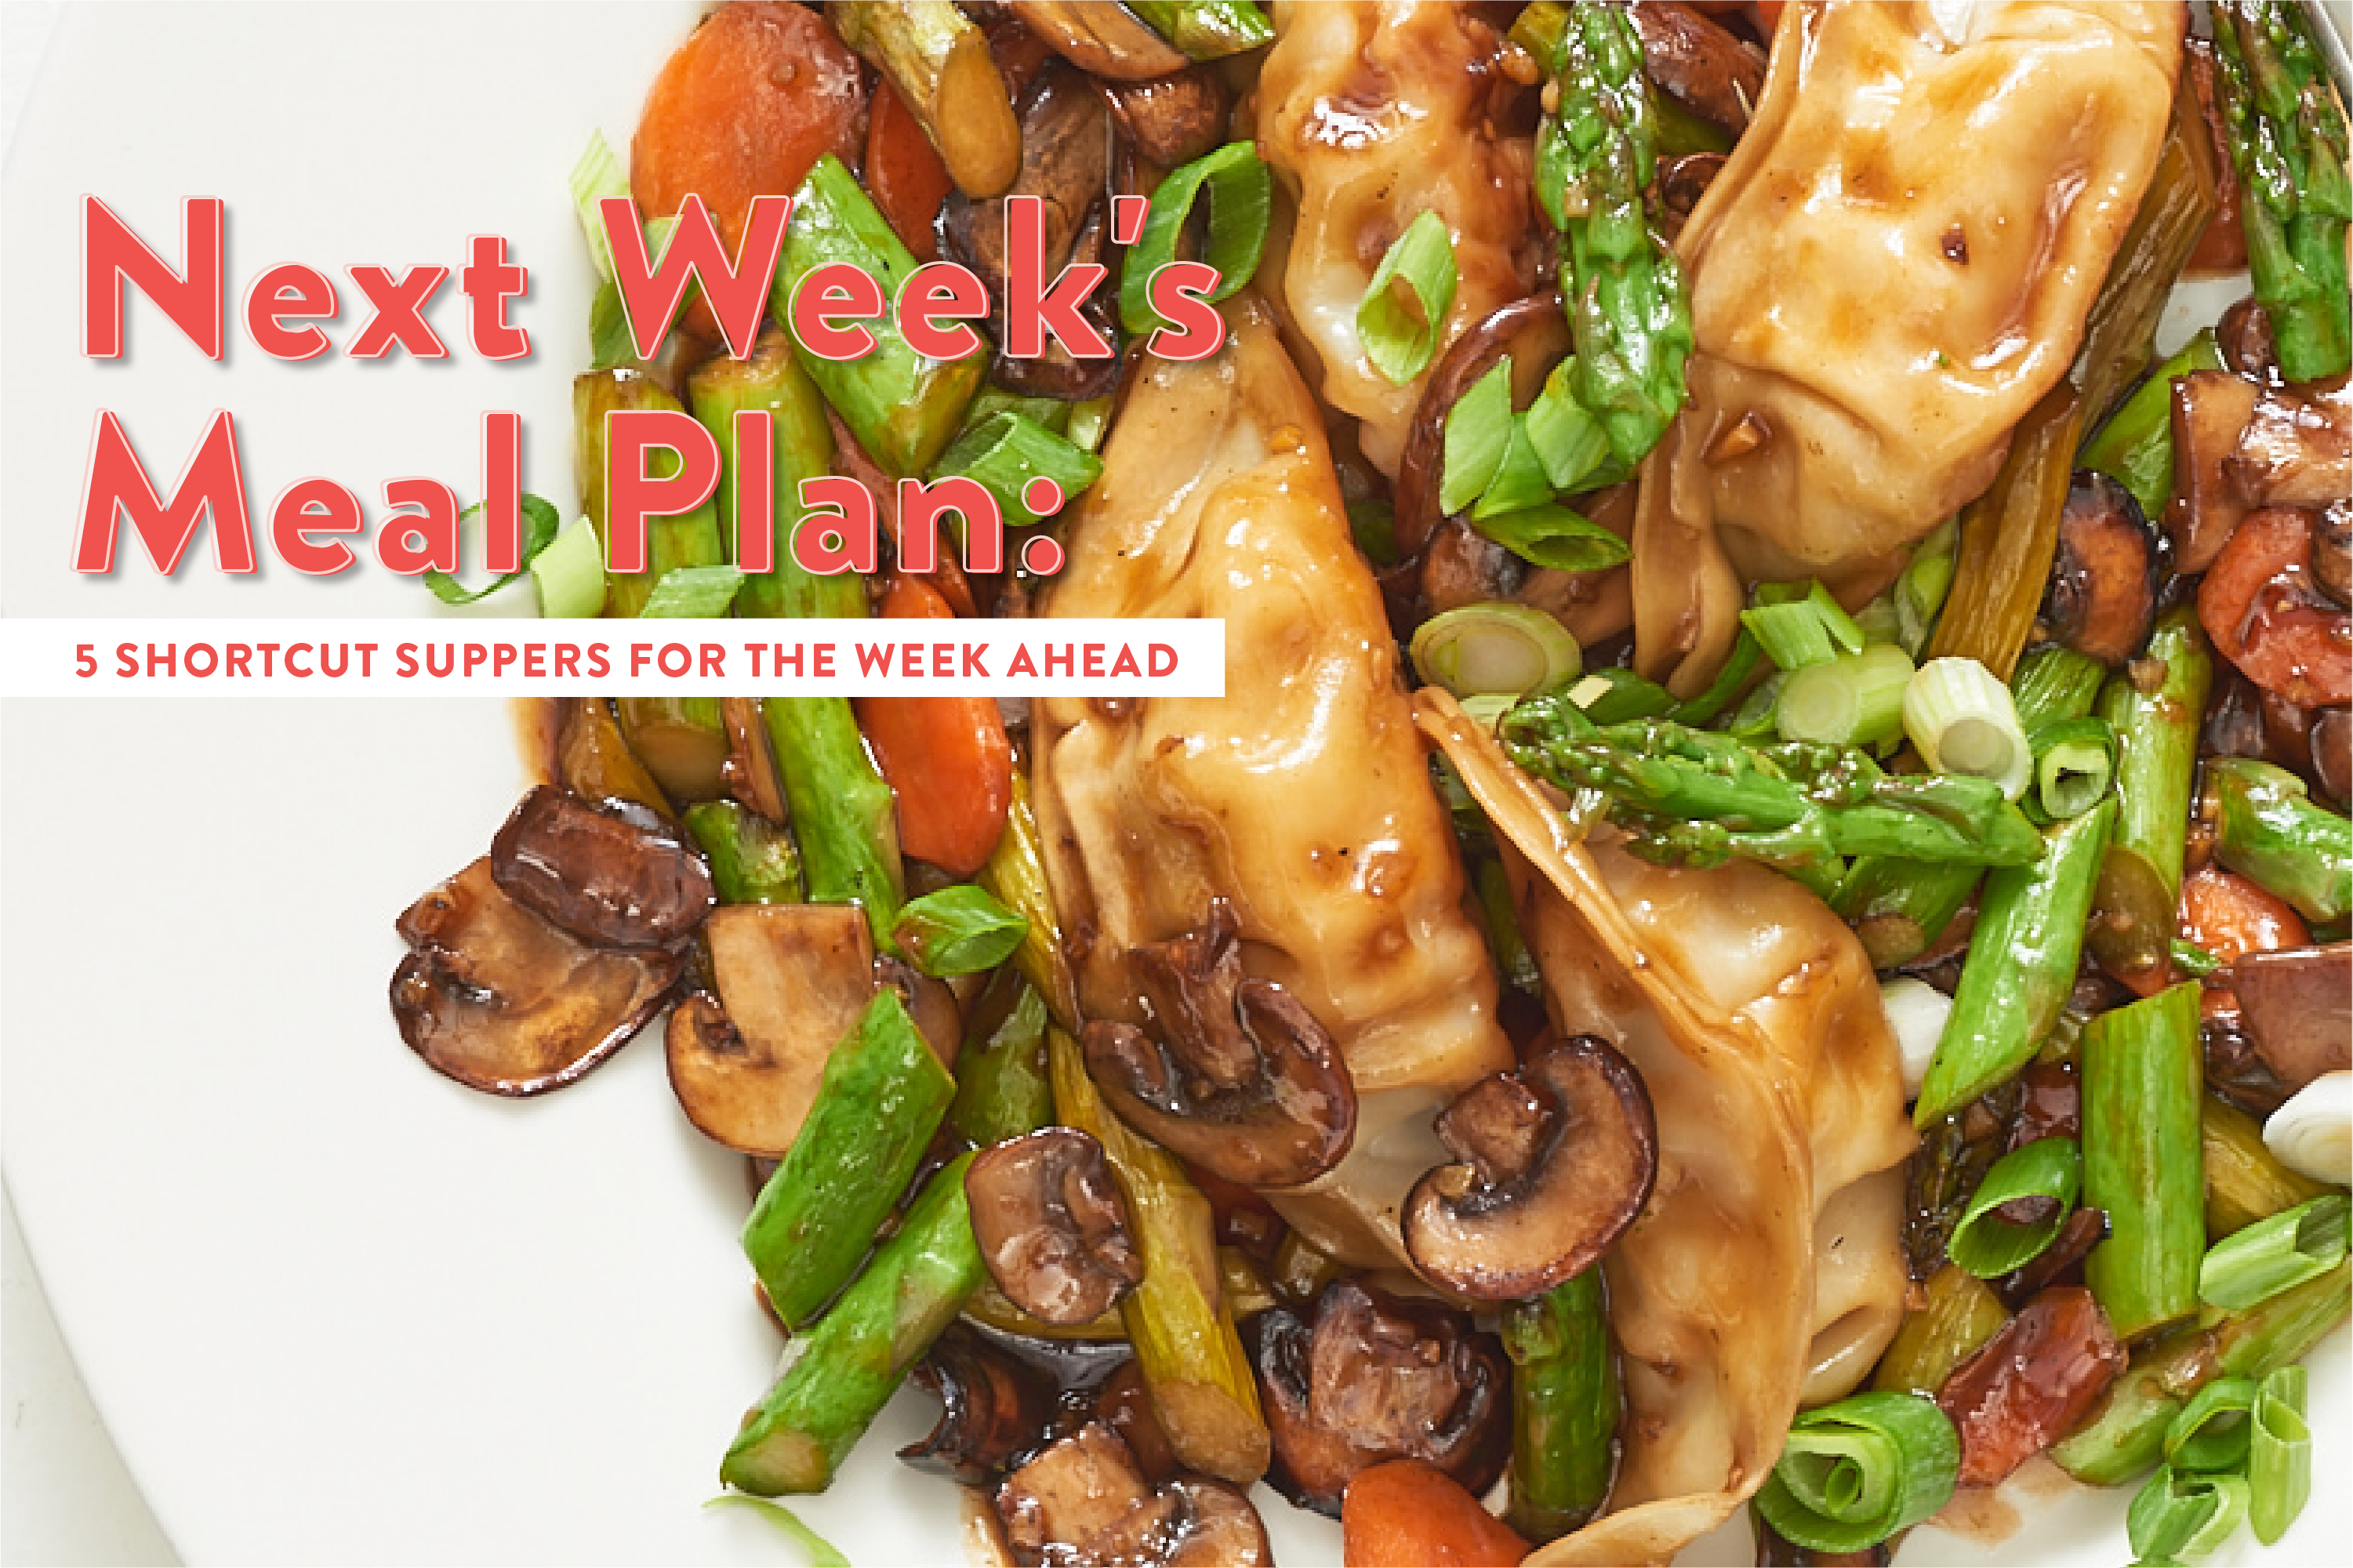 Next Week's Meal Plan: 5 Shortcut Suppers for the Week Ahead